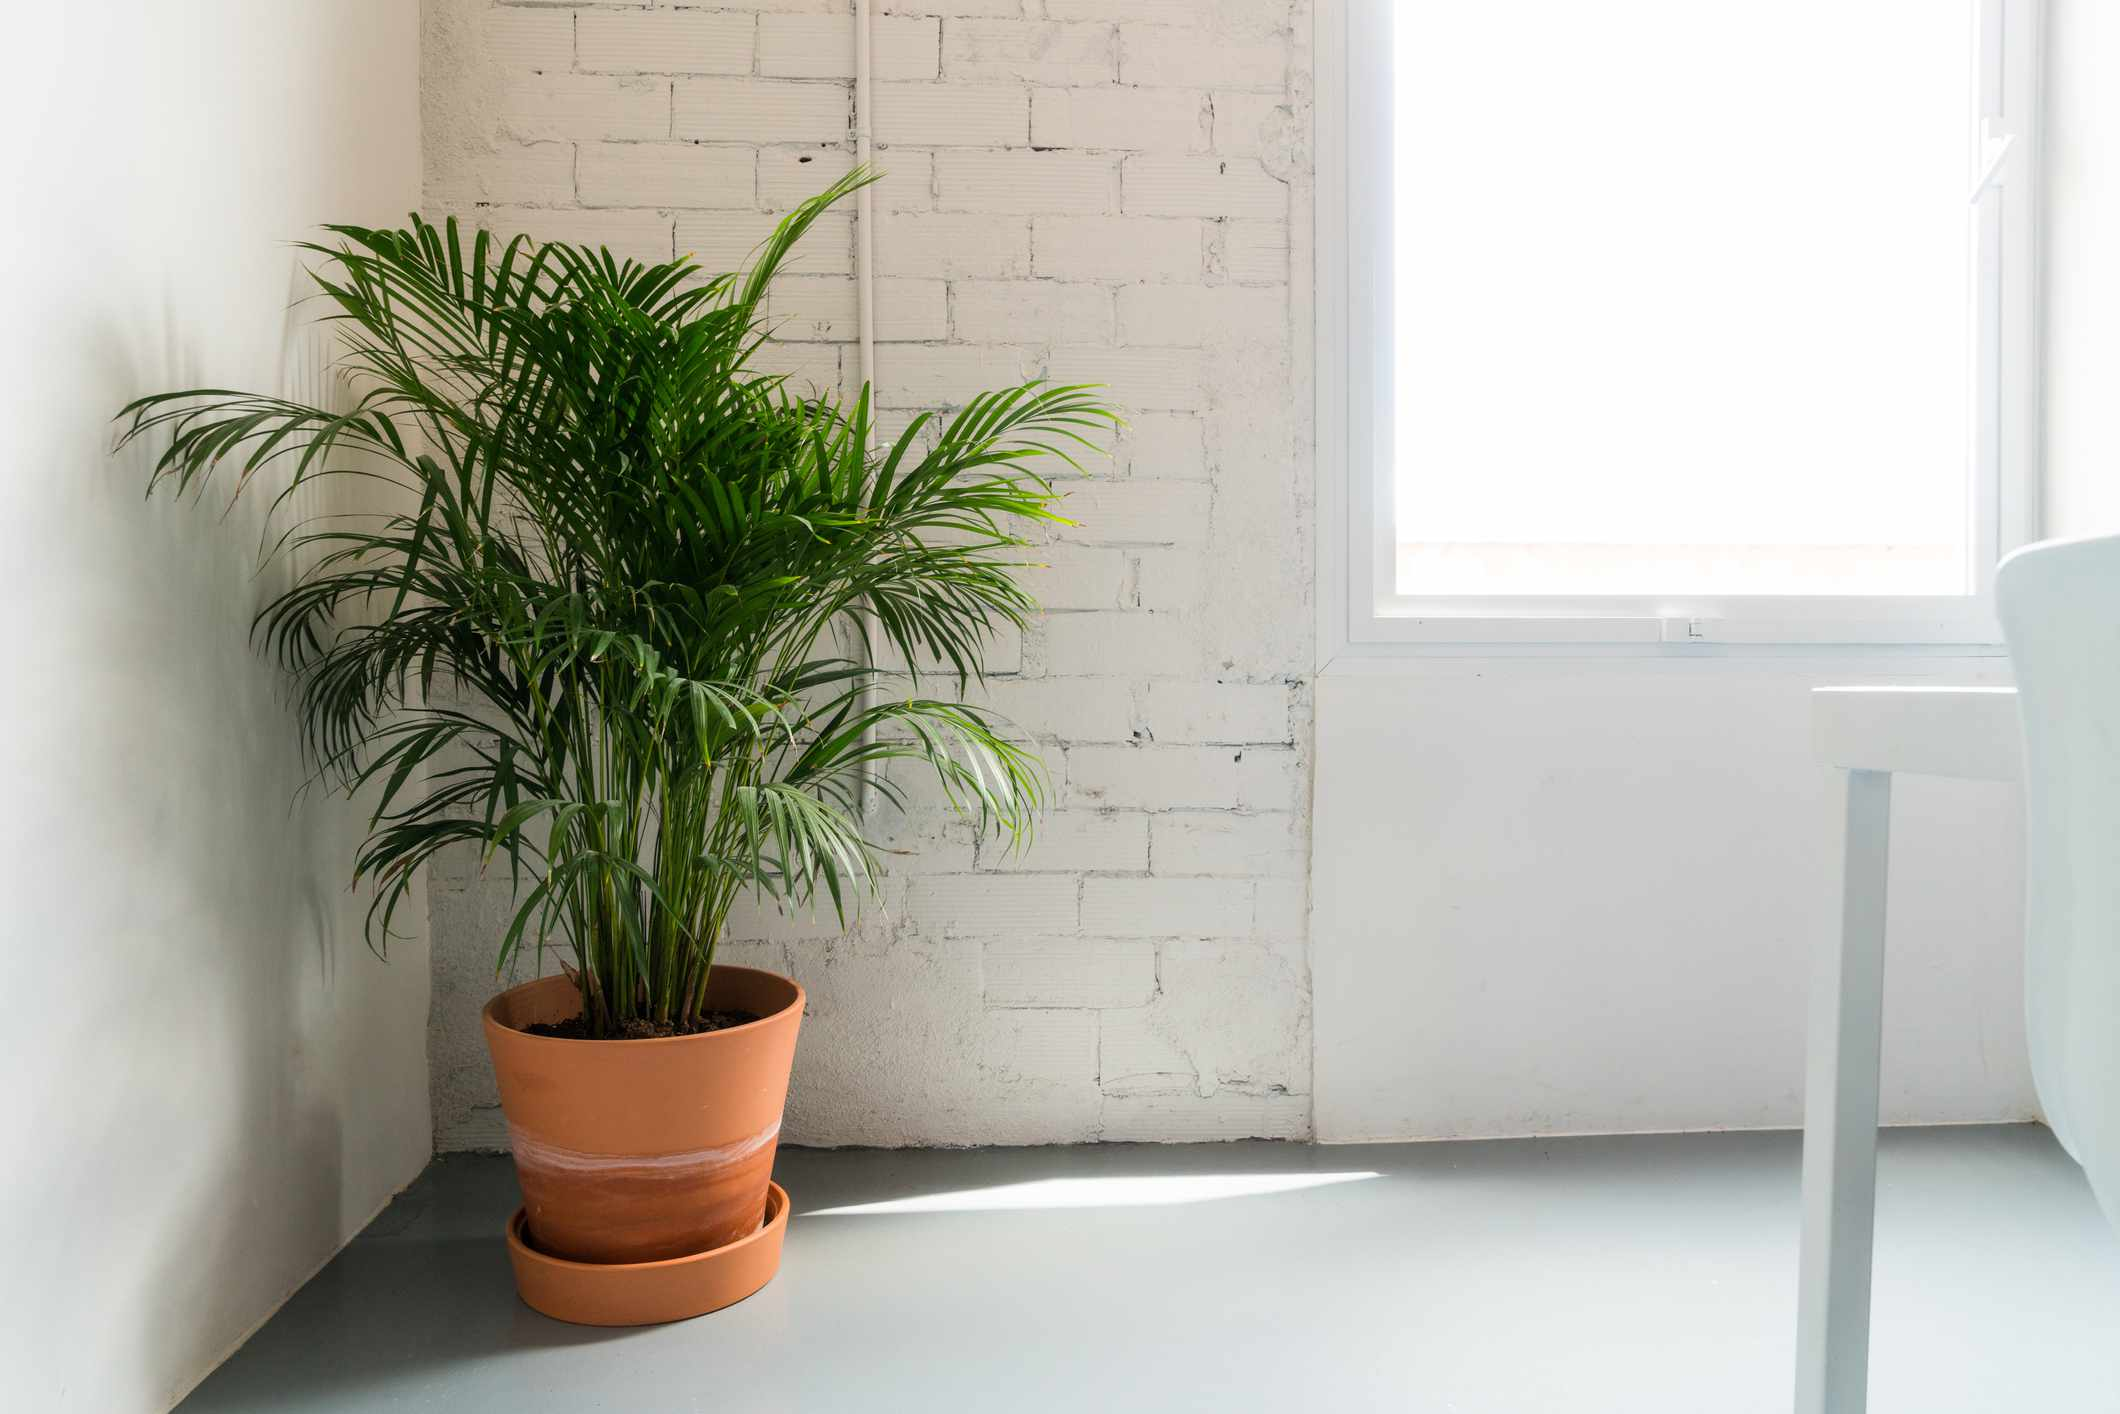 Potted bamboo palm houseplant in indirect light